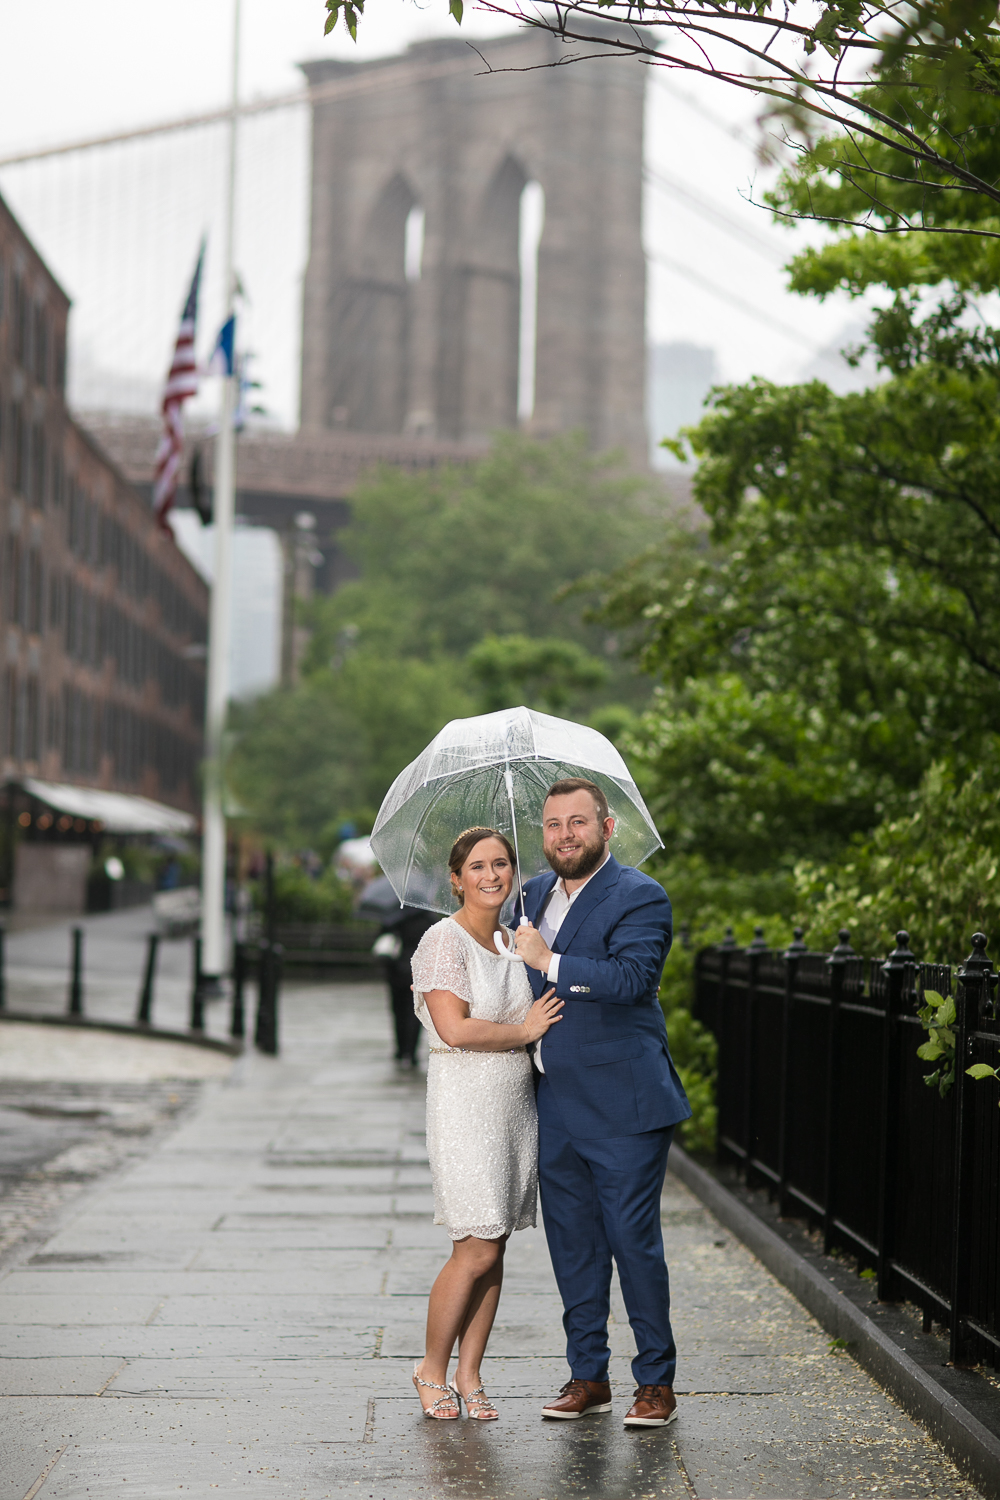 Wedding photos in front of the Brooklyn Bridge. New York Bride in a short wedding dress and groom in a blue suit with clear plastic umbrellas in the rain. | Intimate Wedding at the Malthouse in Manhattan, New York City.